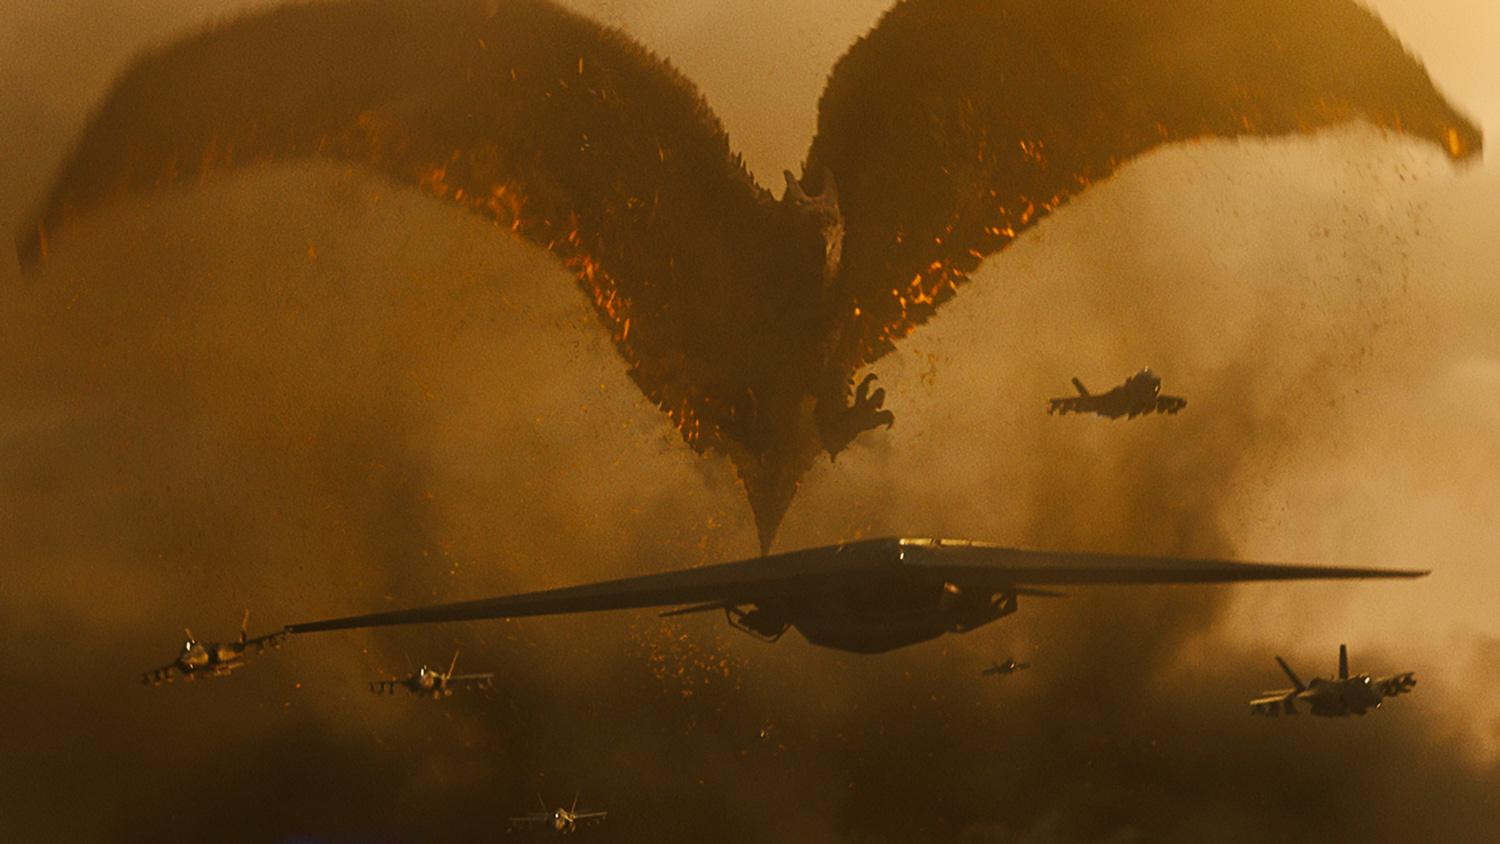 Rodan Is Like A 'Massive A-Bomb' In Godzilla: King Of The Monsters – Exclusive Image